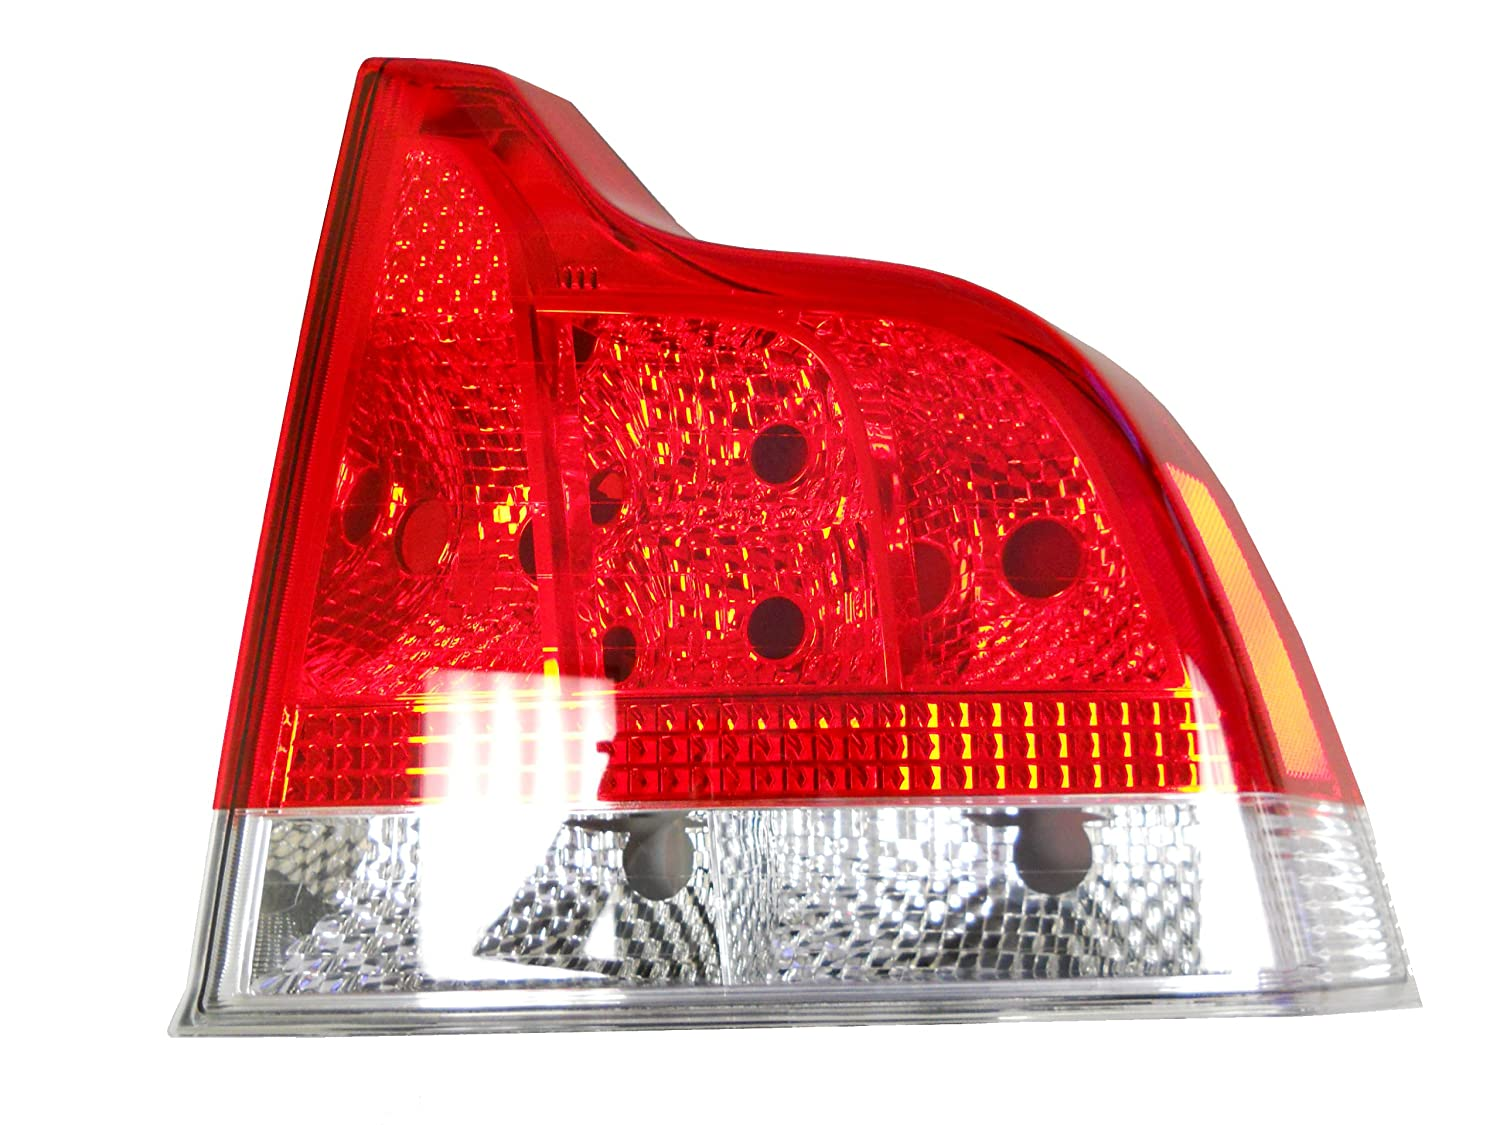 Genuine Volvo S60 2005 2009 Right Hand Rh Passenger Side Tail Light Lamp Bulb Circuit Board W Bulbs Left Or Fits 0206 New Oem Automotive